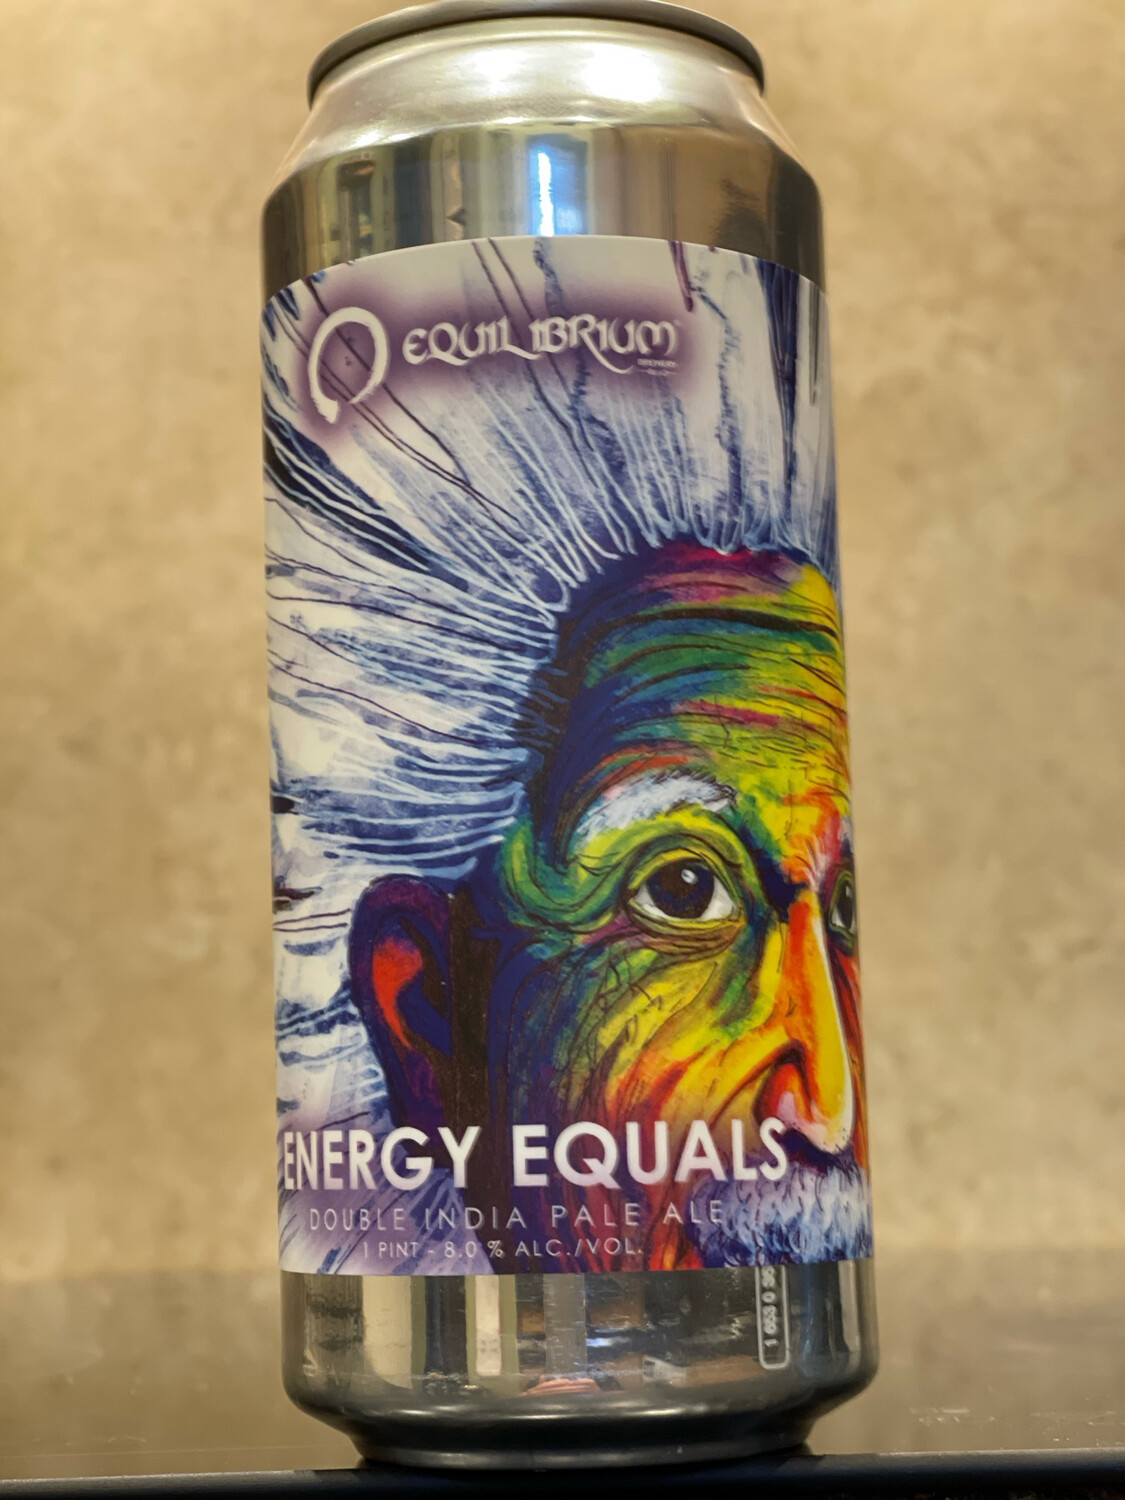 EQUILIBRIUM BREWERY - ENERGY EQUALS